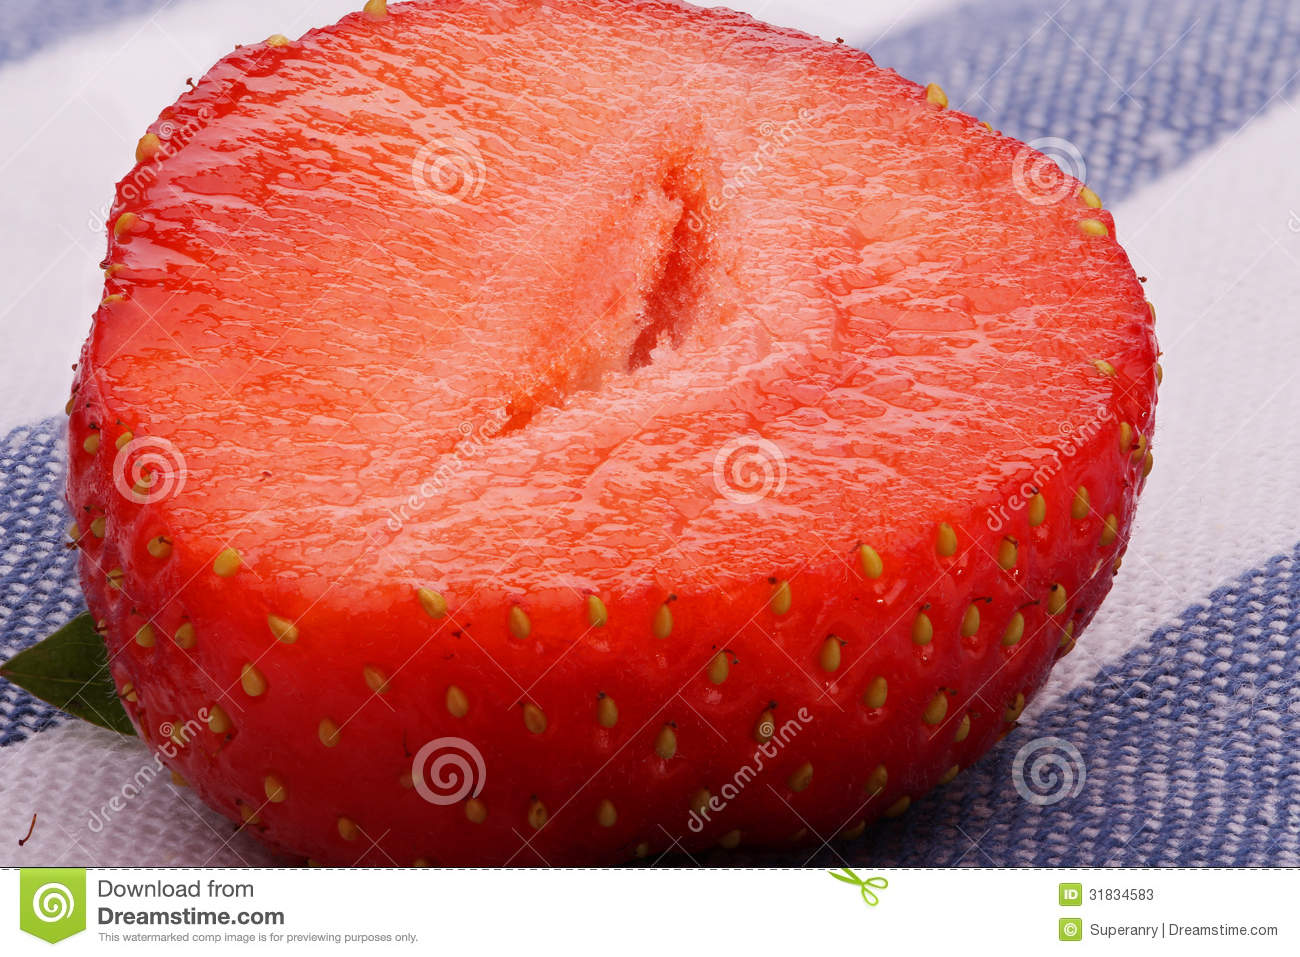 how to cut up strawberries